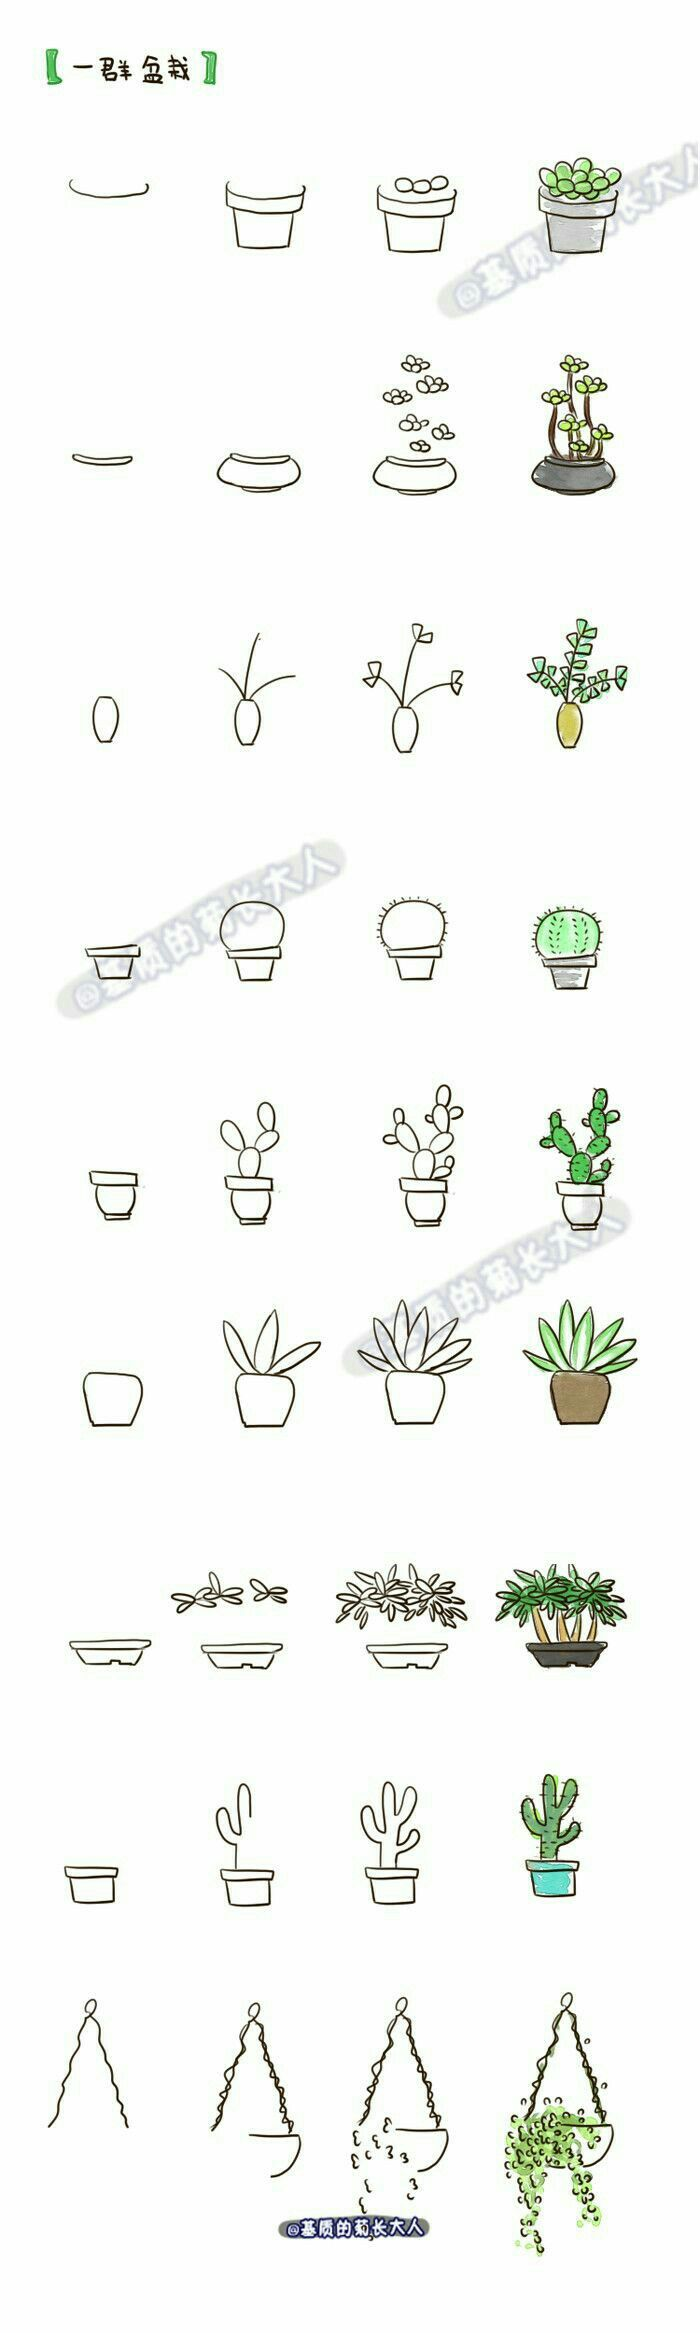 how to draw a plant step by step